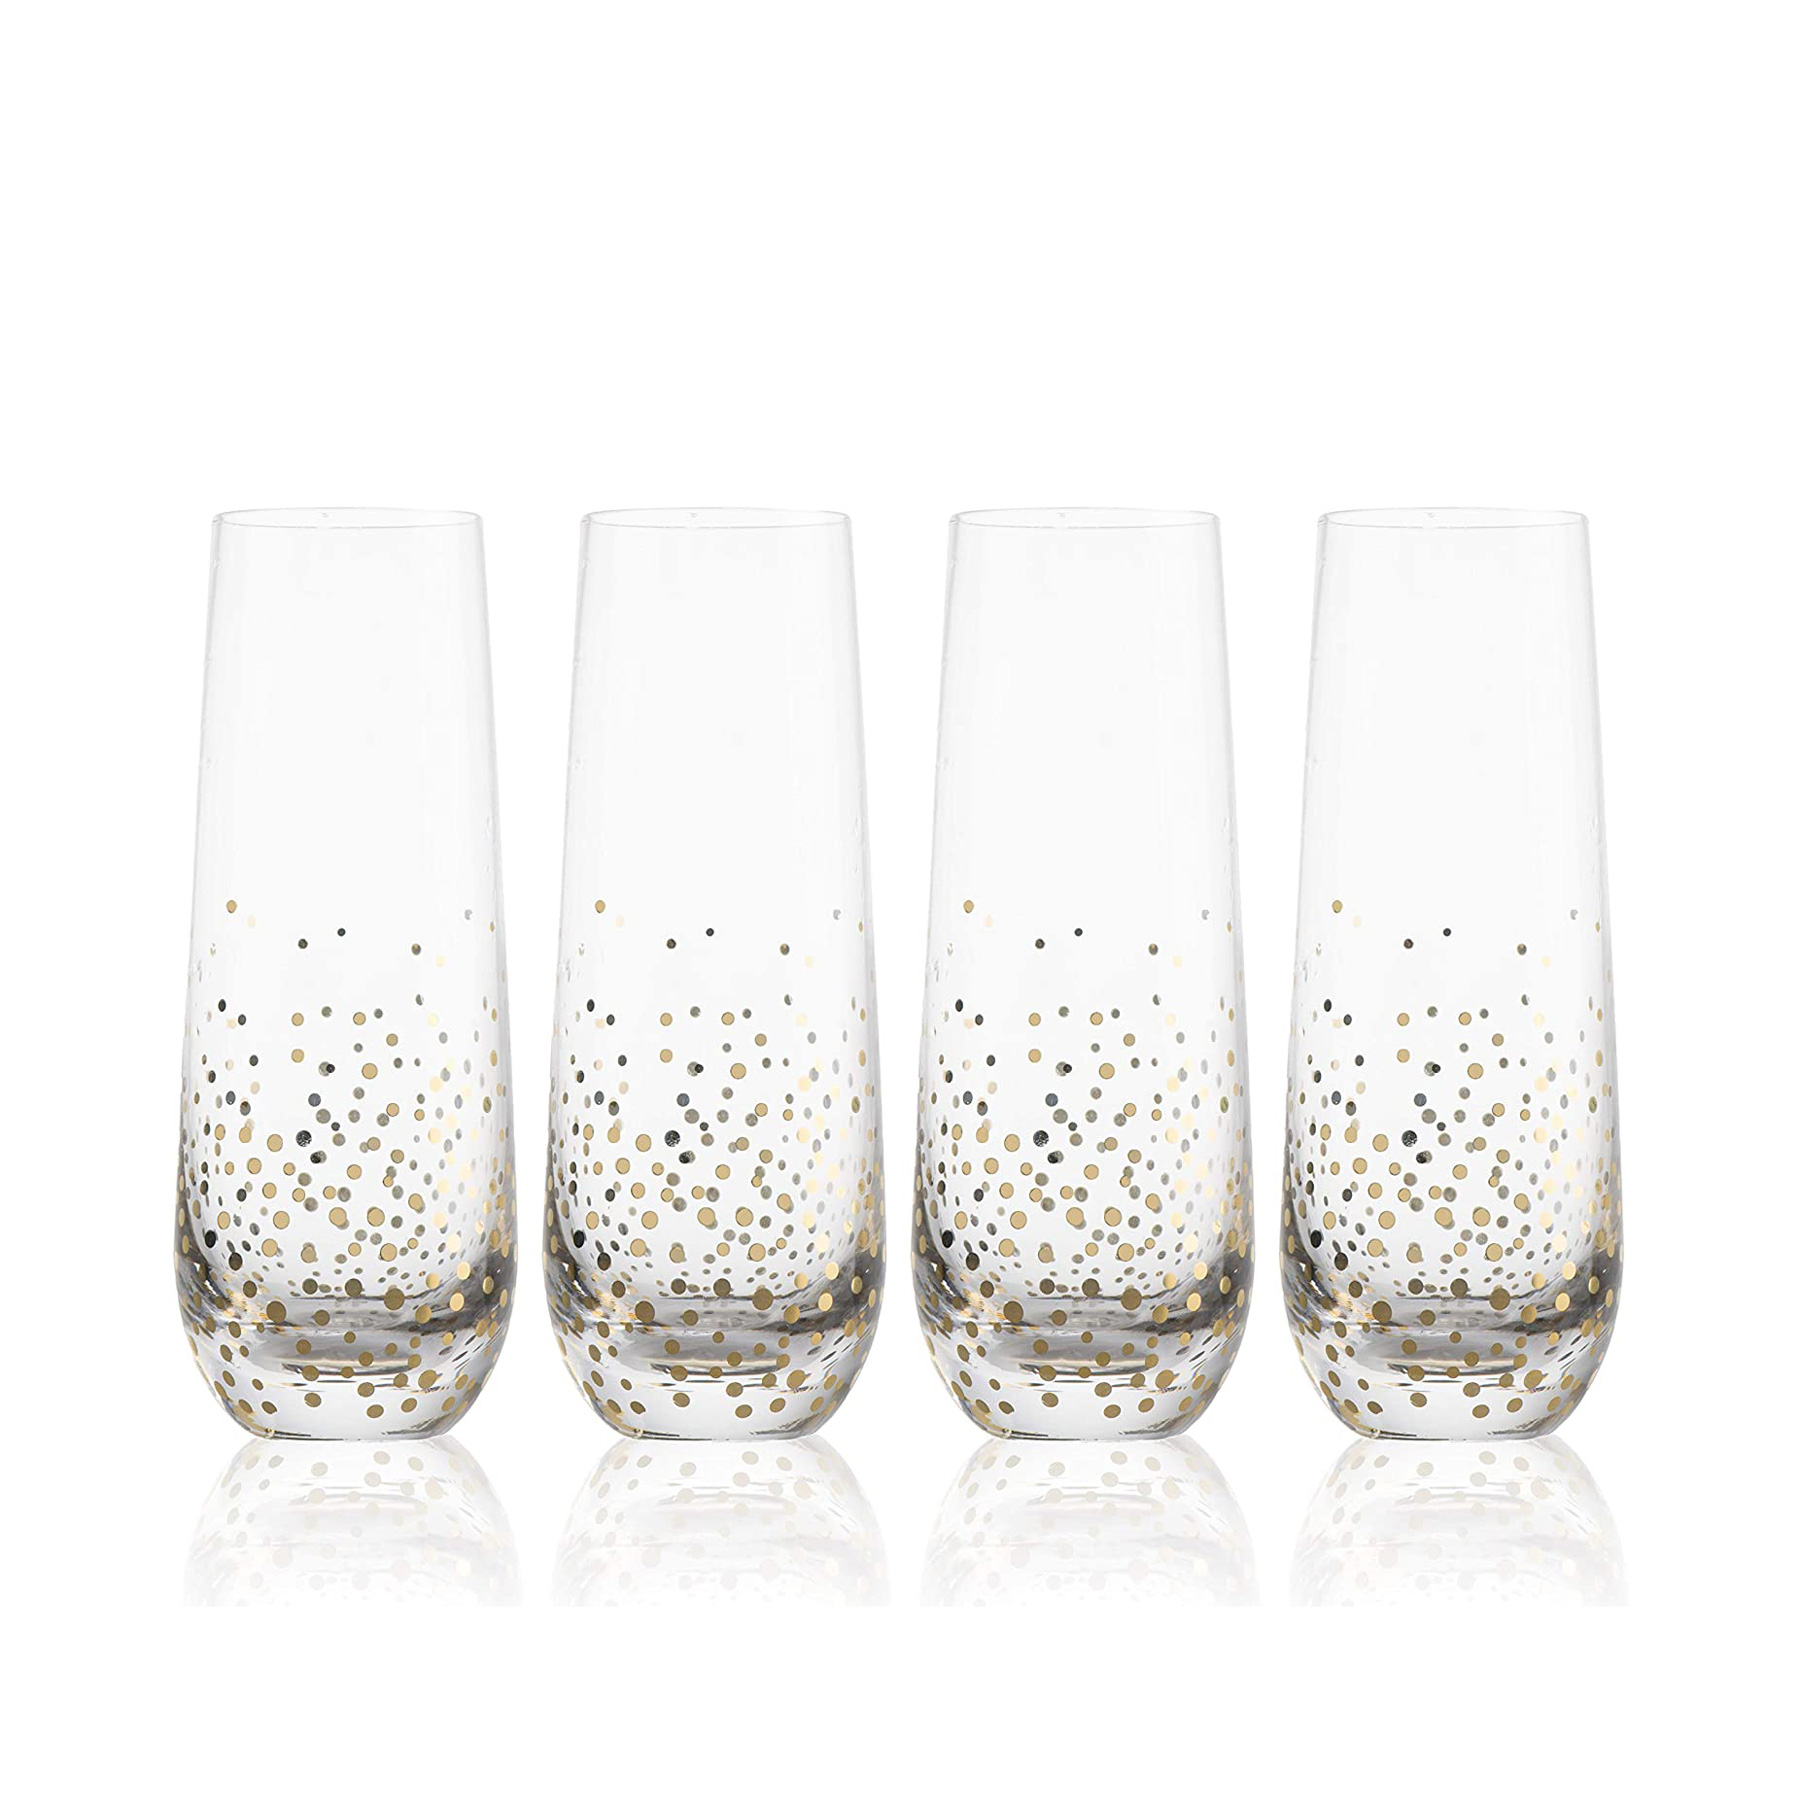 Engagement Gift Ideas: Gold Flecked Stemless Champagne Flutes